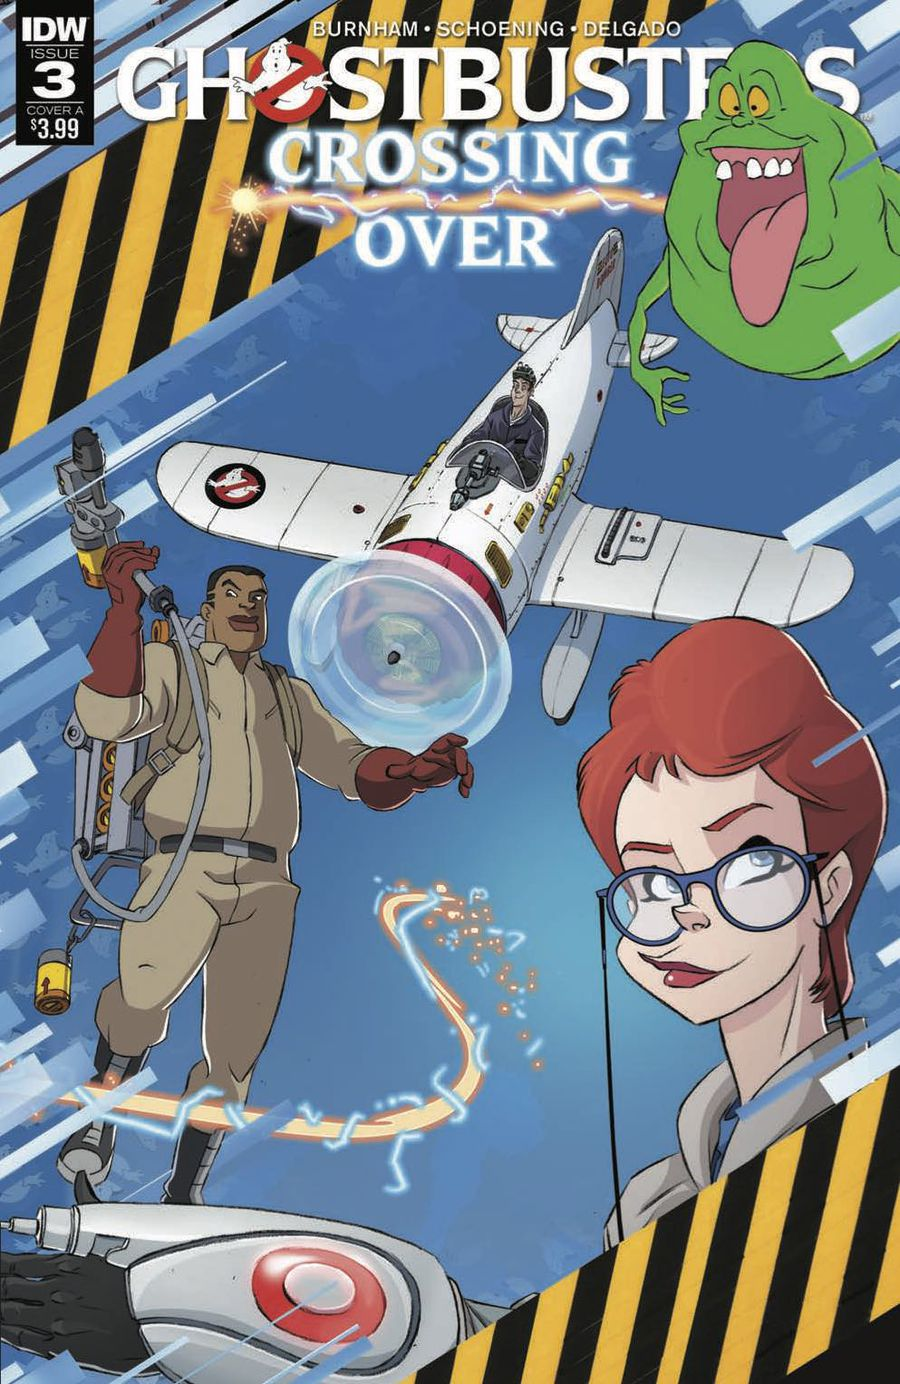 Ghostbusters: Crossing Over Issue 3 Cover A